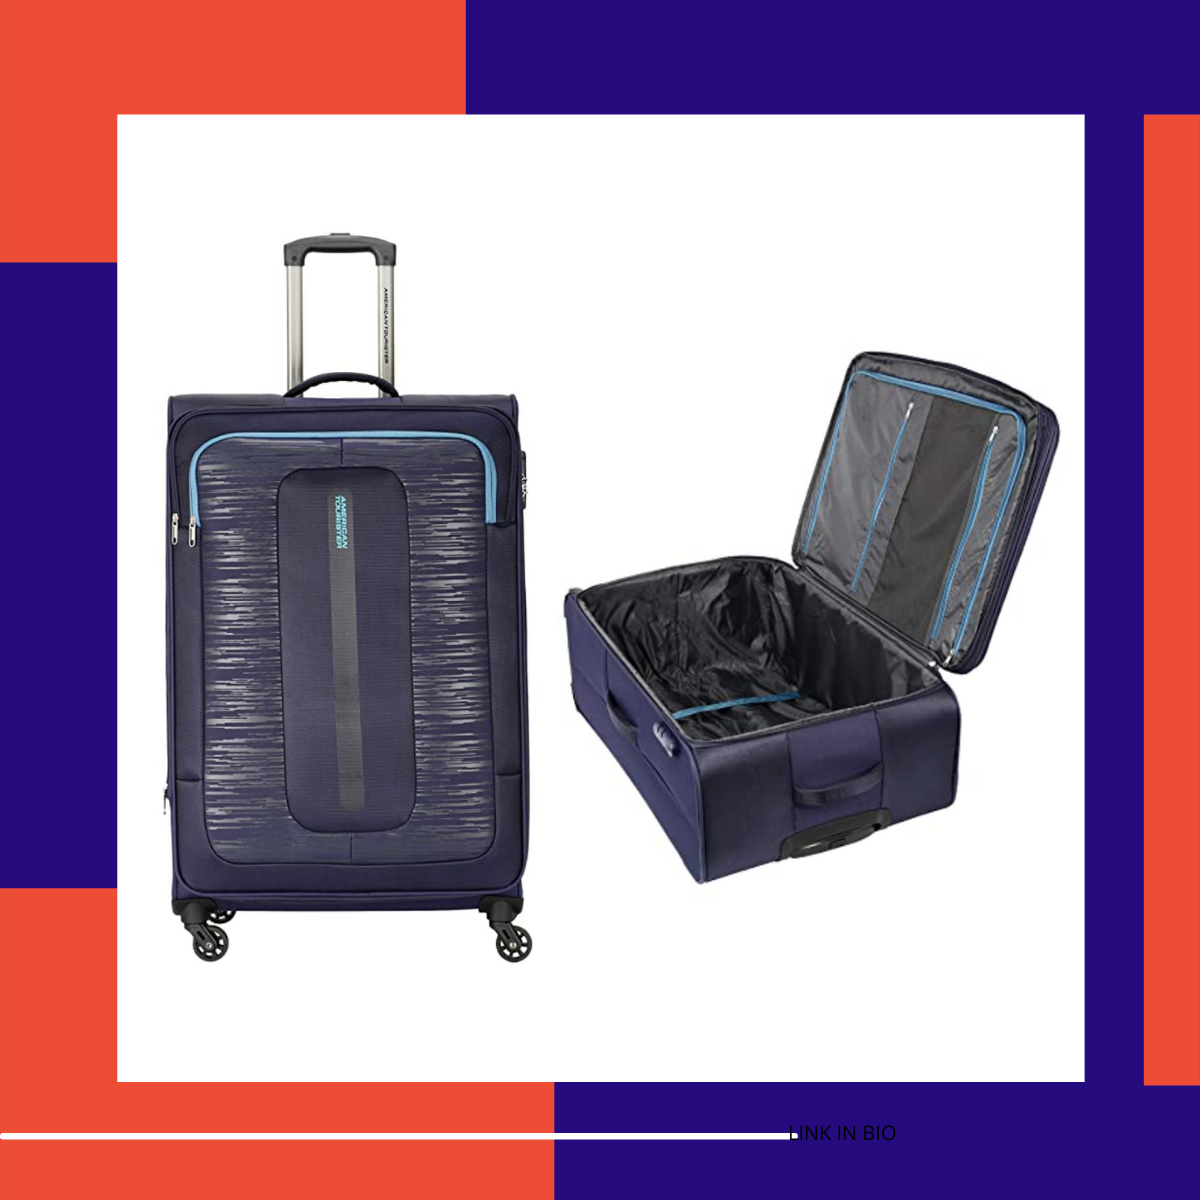 Best American Tourister Luggage Bag